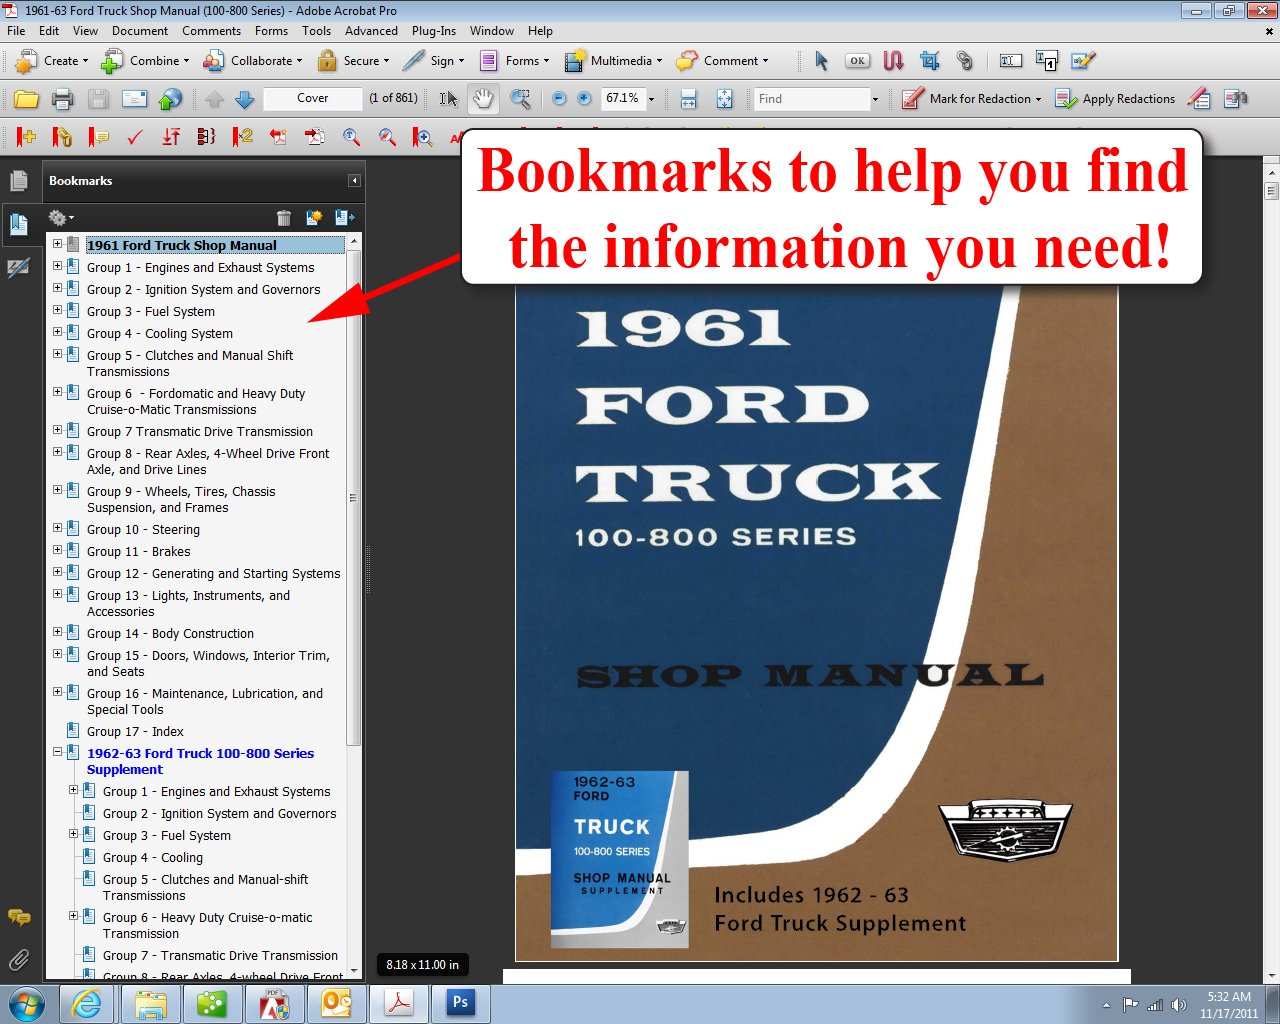 1961 63 ford truck shop manual ford motor company david e leblanc 1961 63 ford truck shop manual ford motor company david e leblanc 9781603710701 amazon books fandeluxe Images